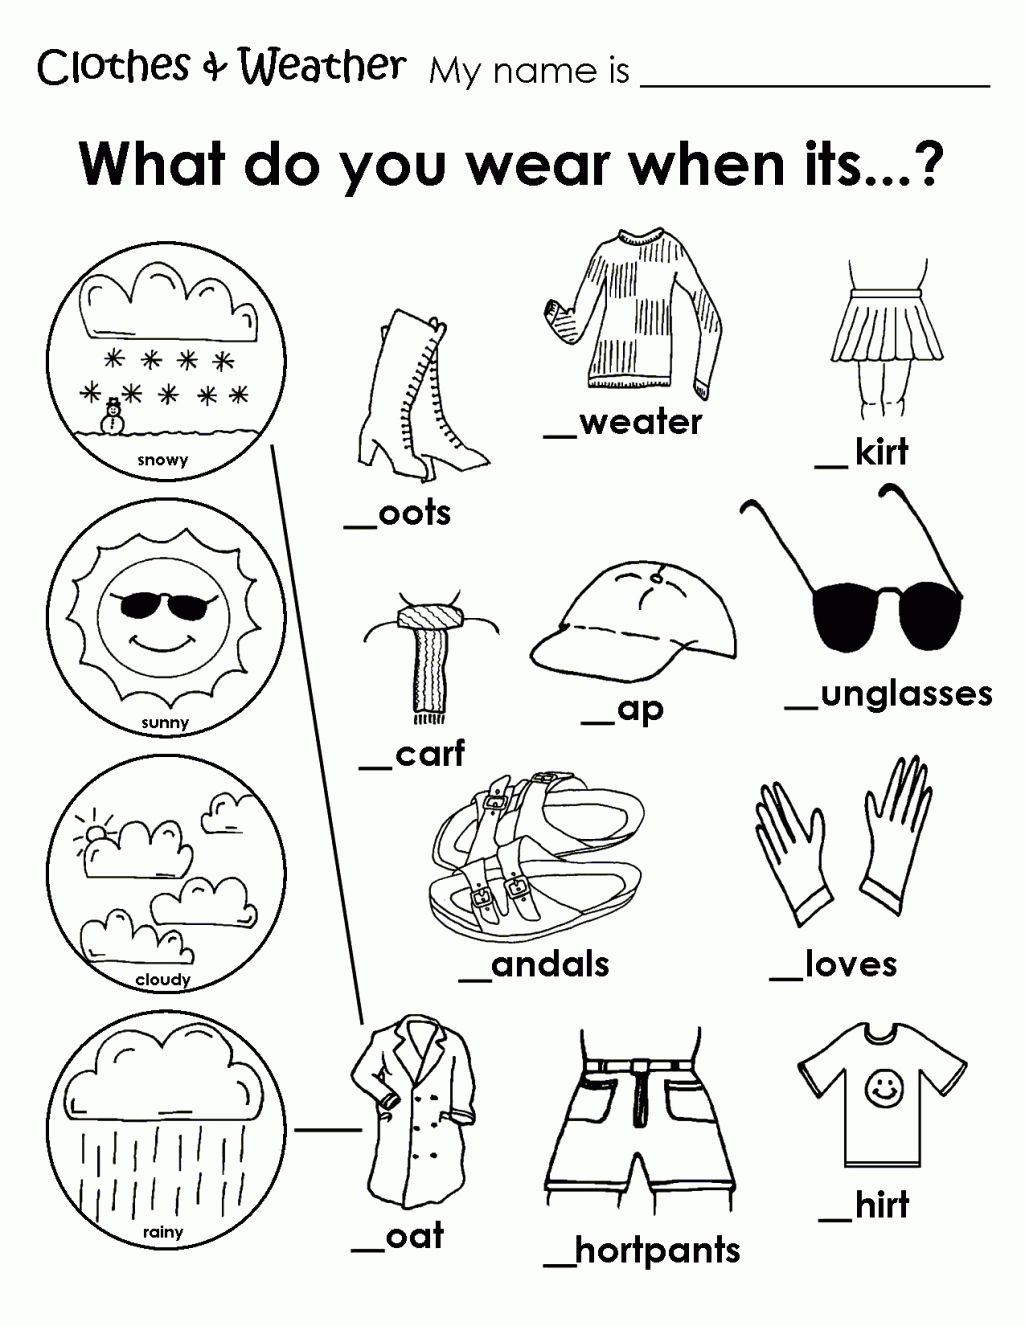 Summer clothes coloring pages - Printable Weather Clothes Worksheet